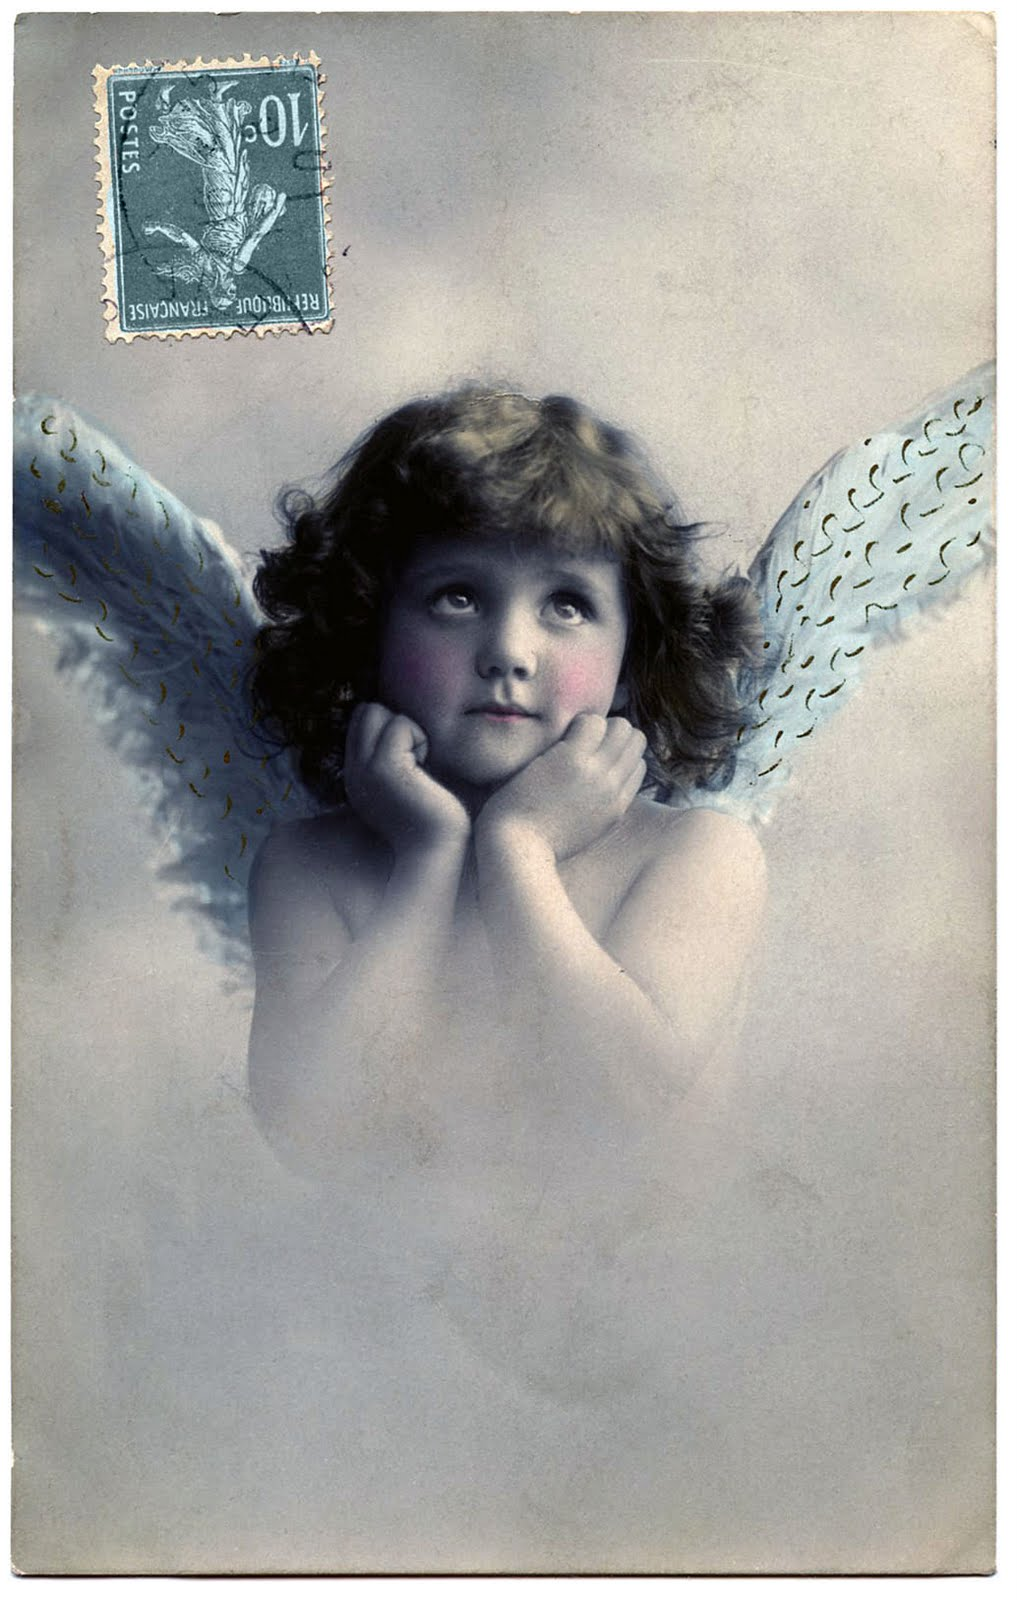 Vintage Image - Best Little Angel Girl - Old Photo - The ...